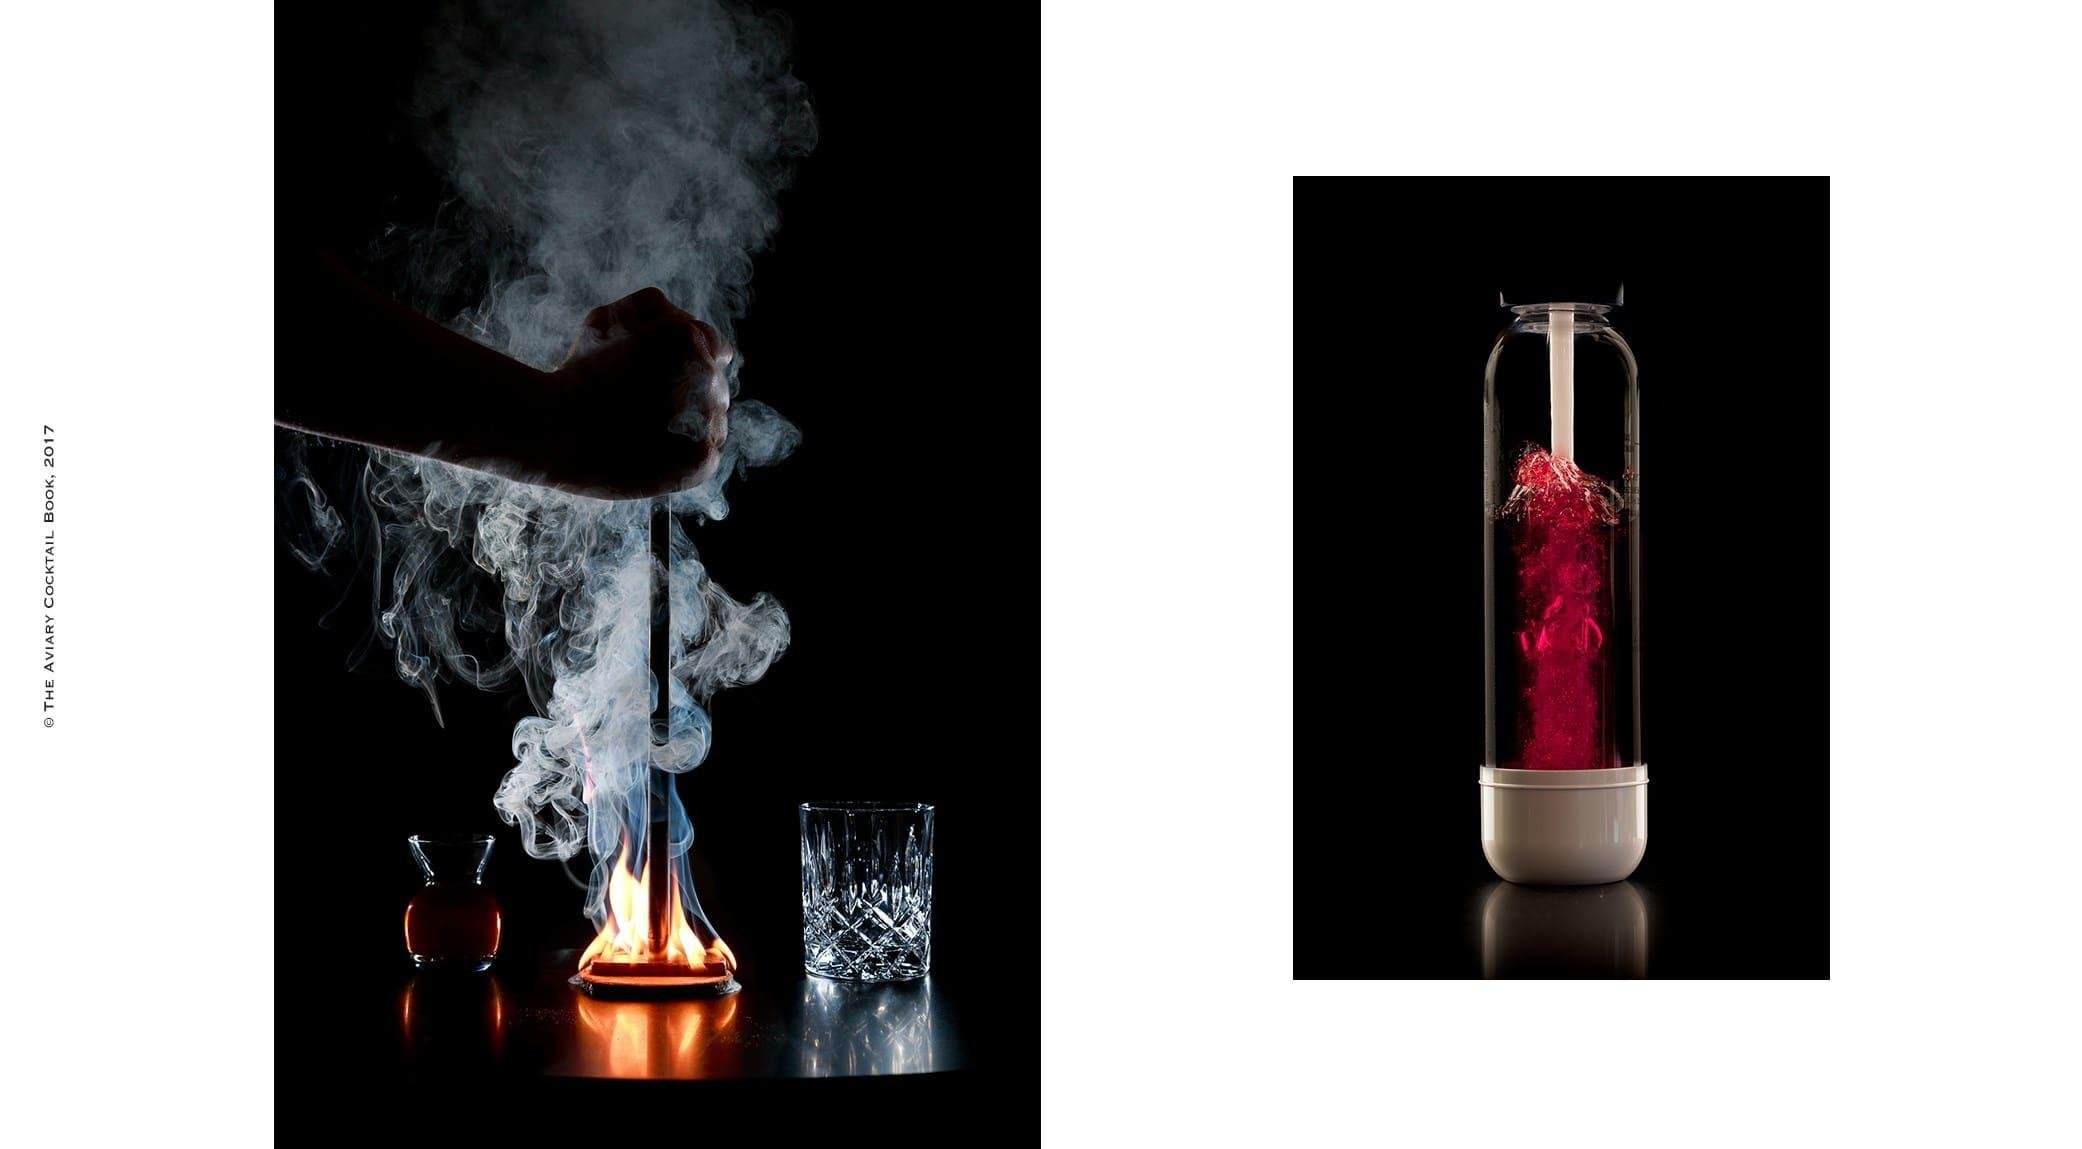 original_The-Aviary-Cocktail-Book-04.jpg